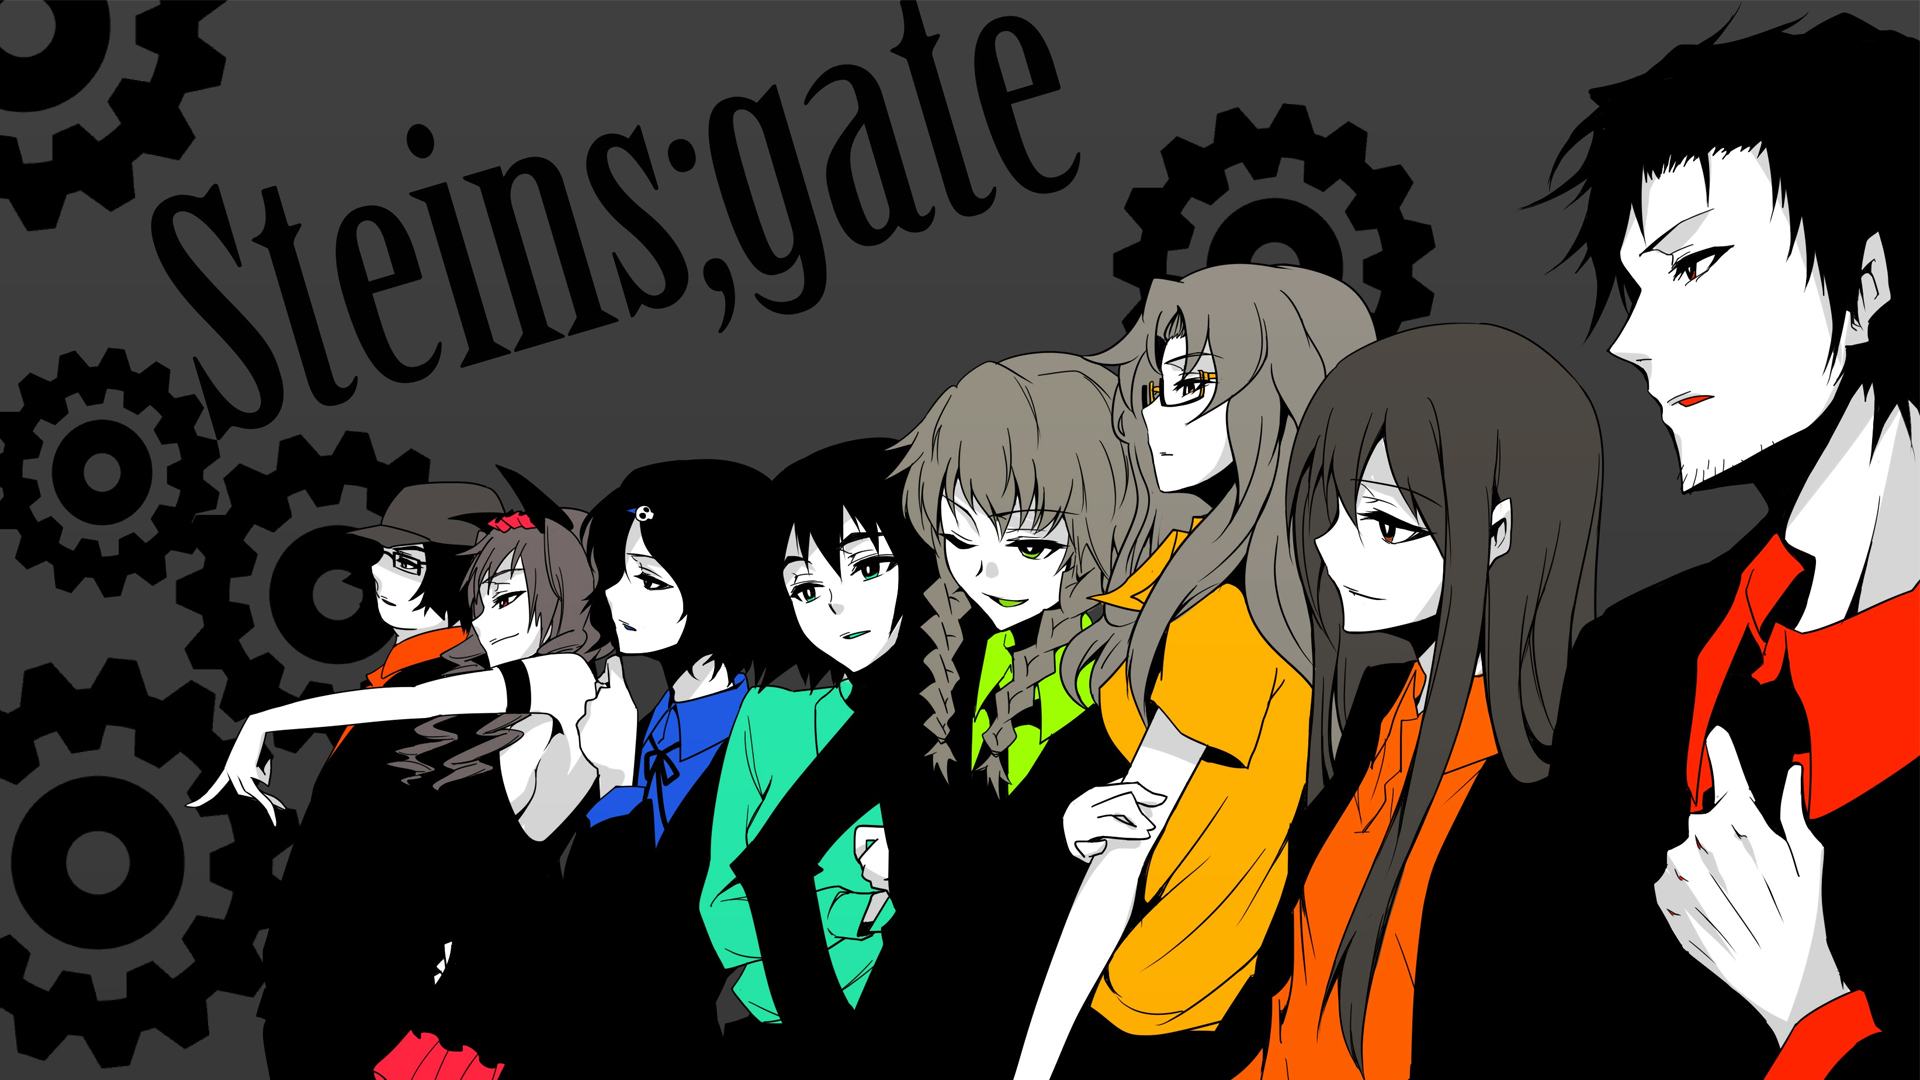 Free Download Anime Steins Gate Wallpaper 1920x1080 Anime Steins